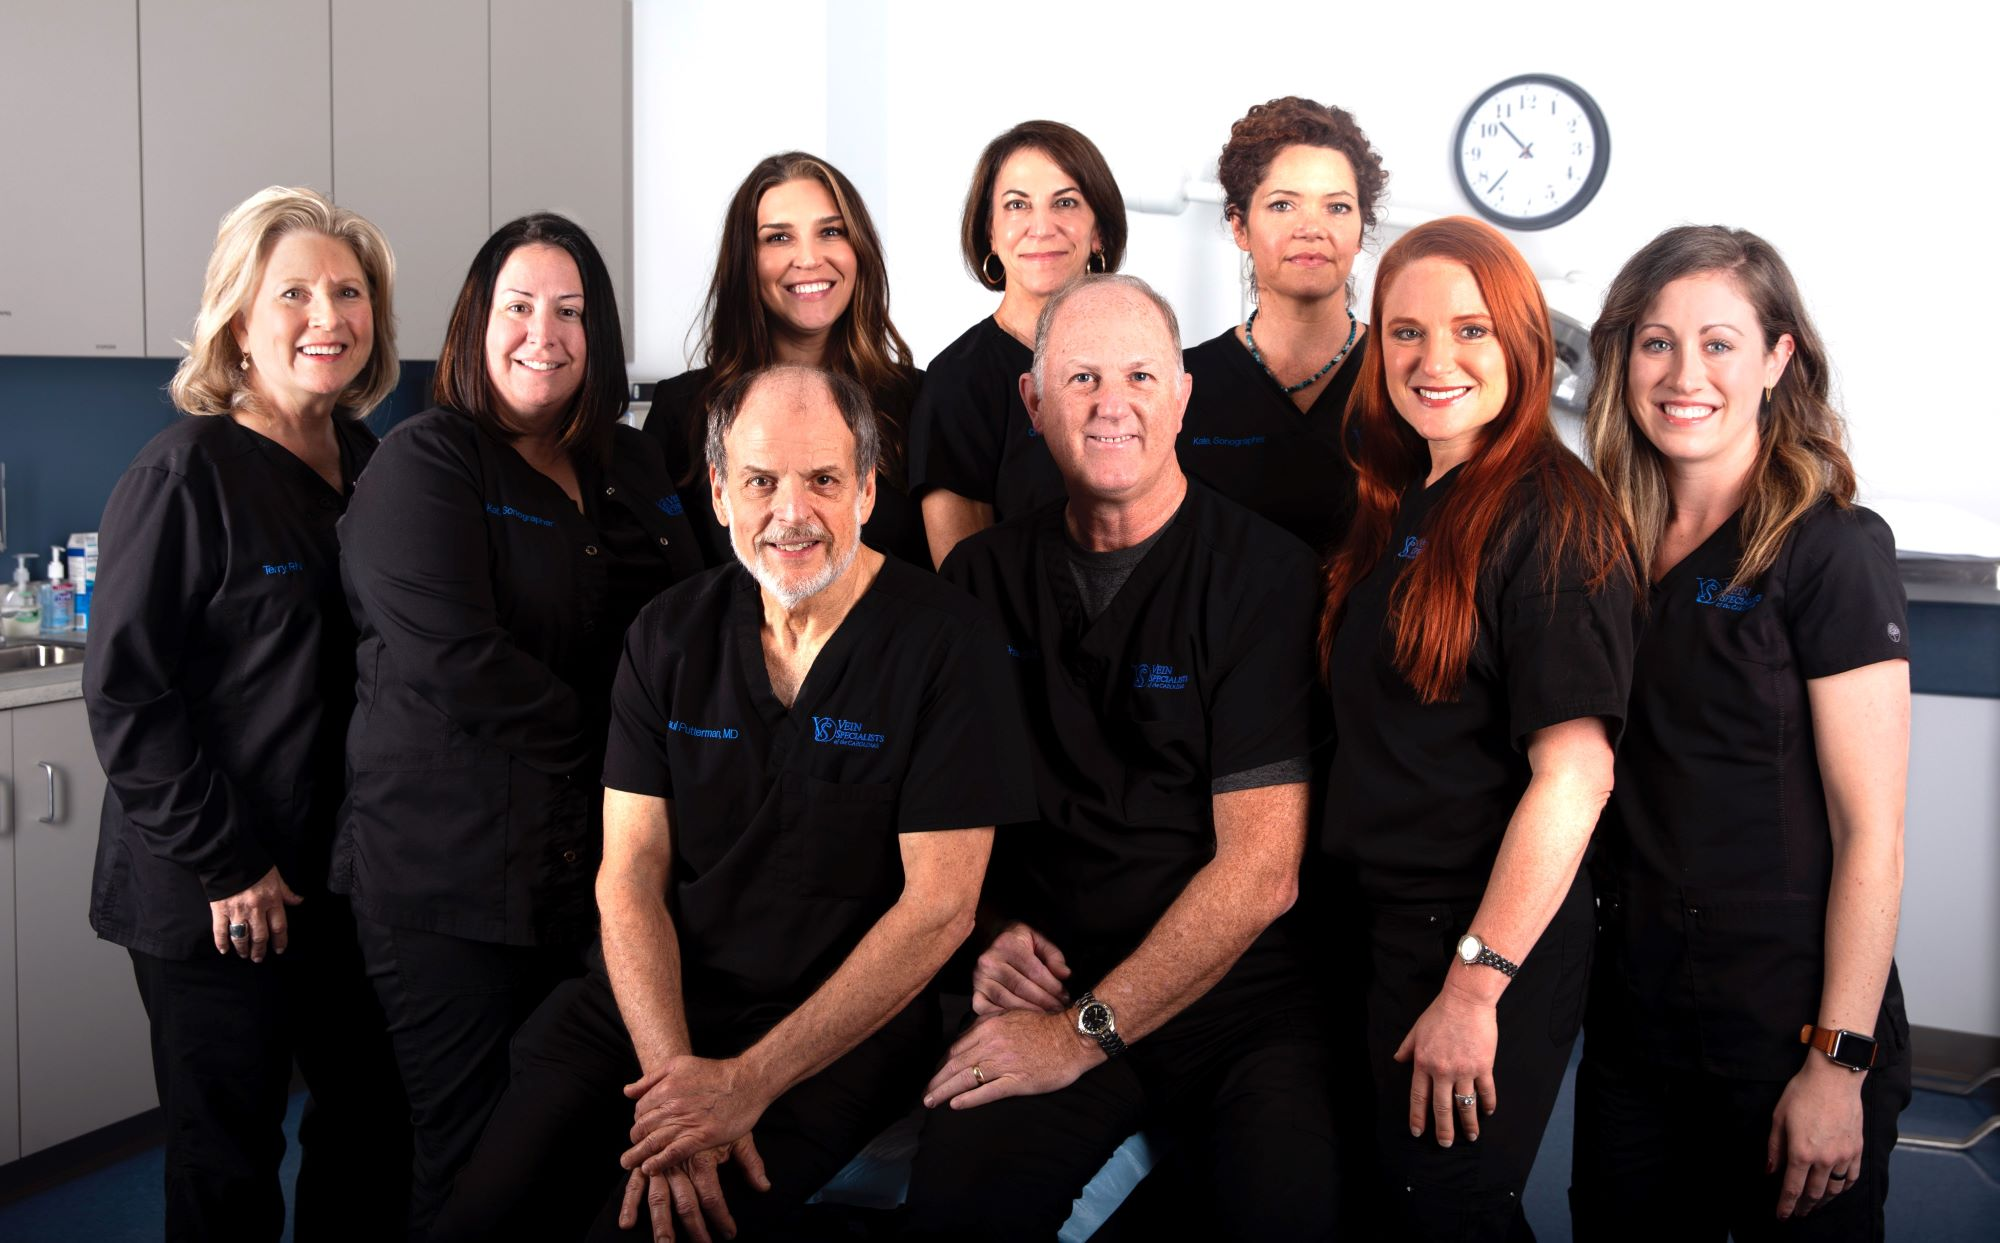 About Dr. Draughn, Vein Specialists of the Carolinas